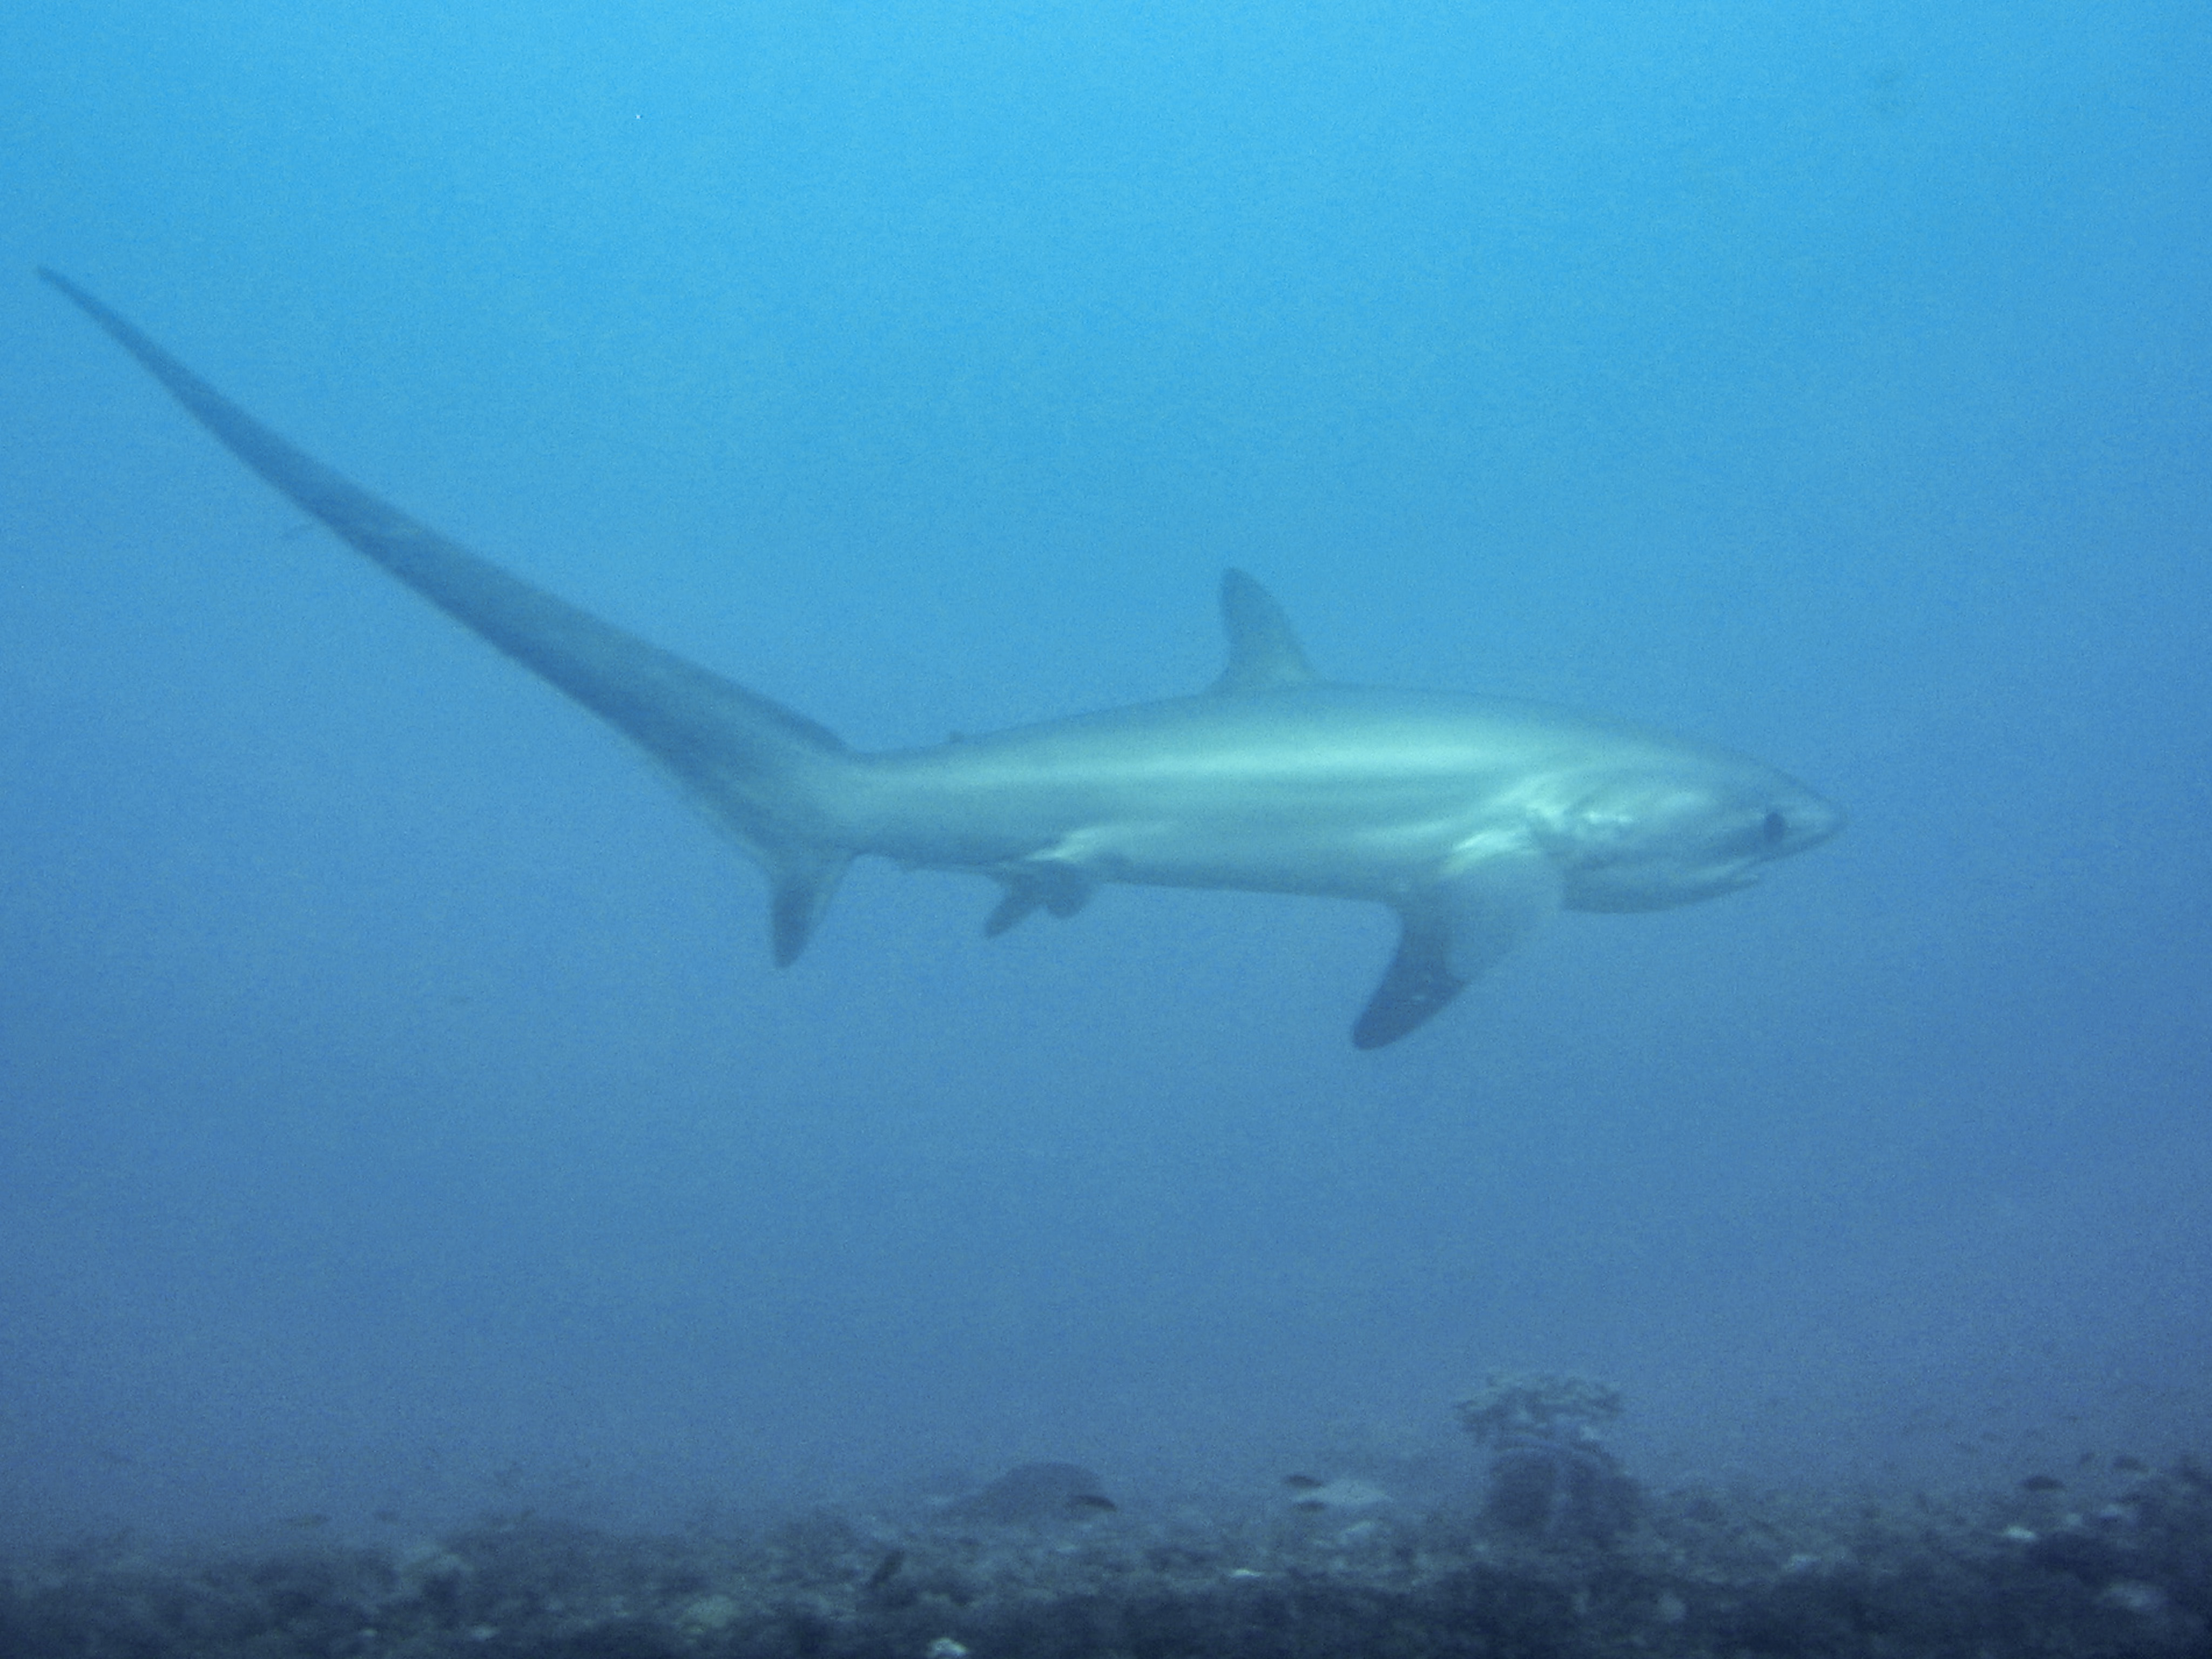 Thresher shark wallpaper